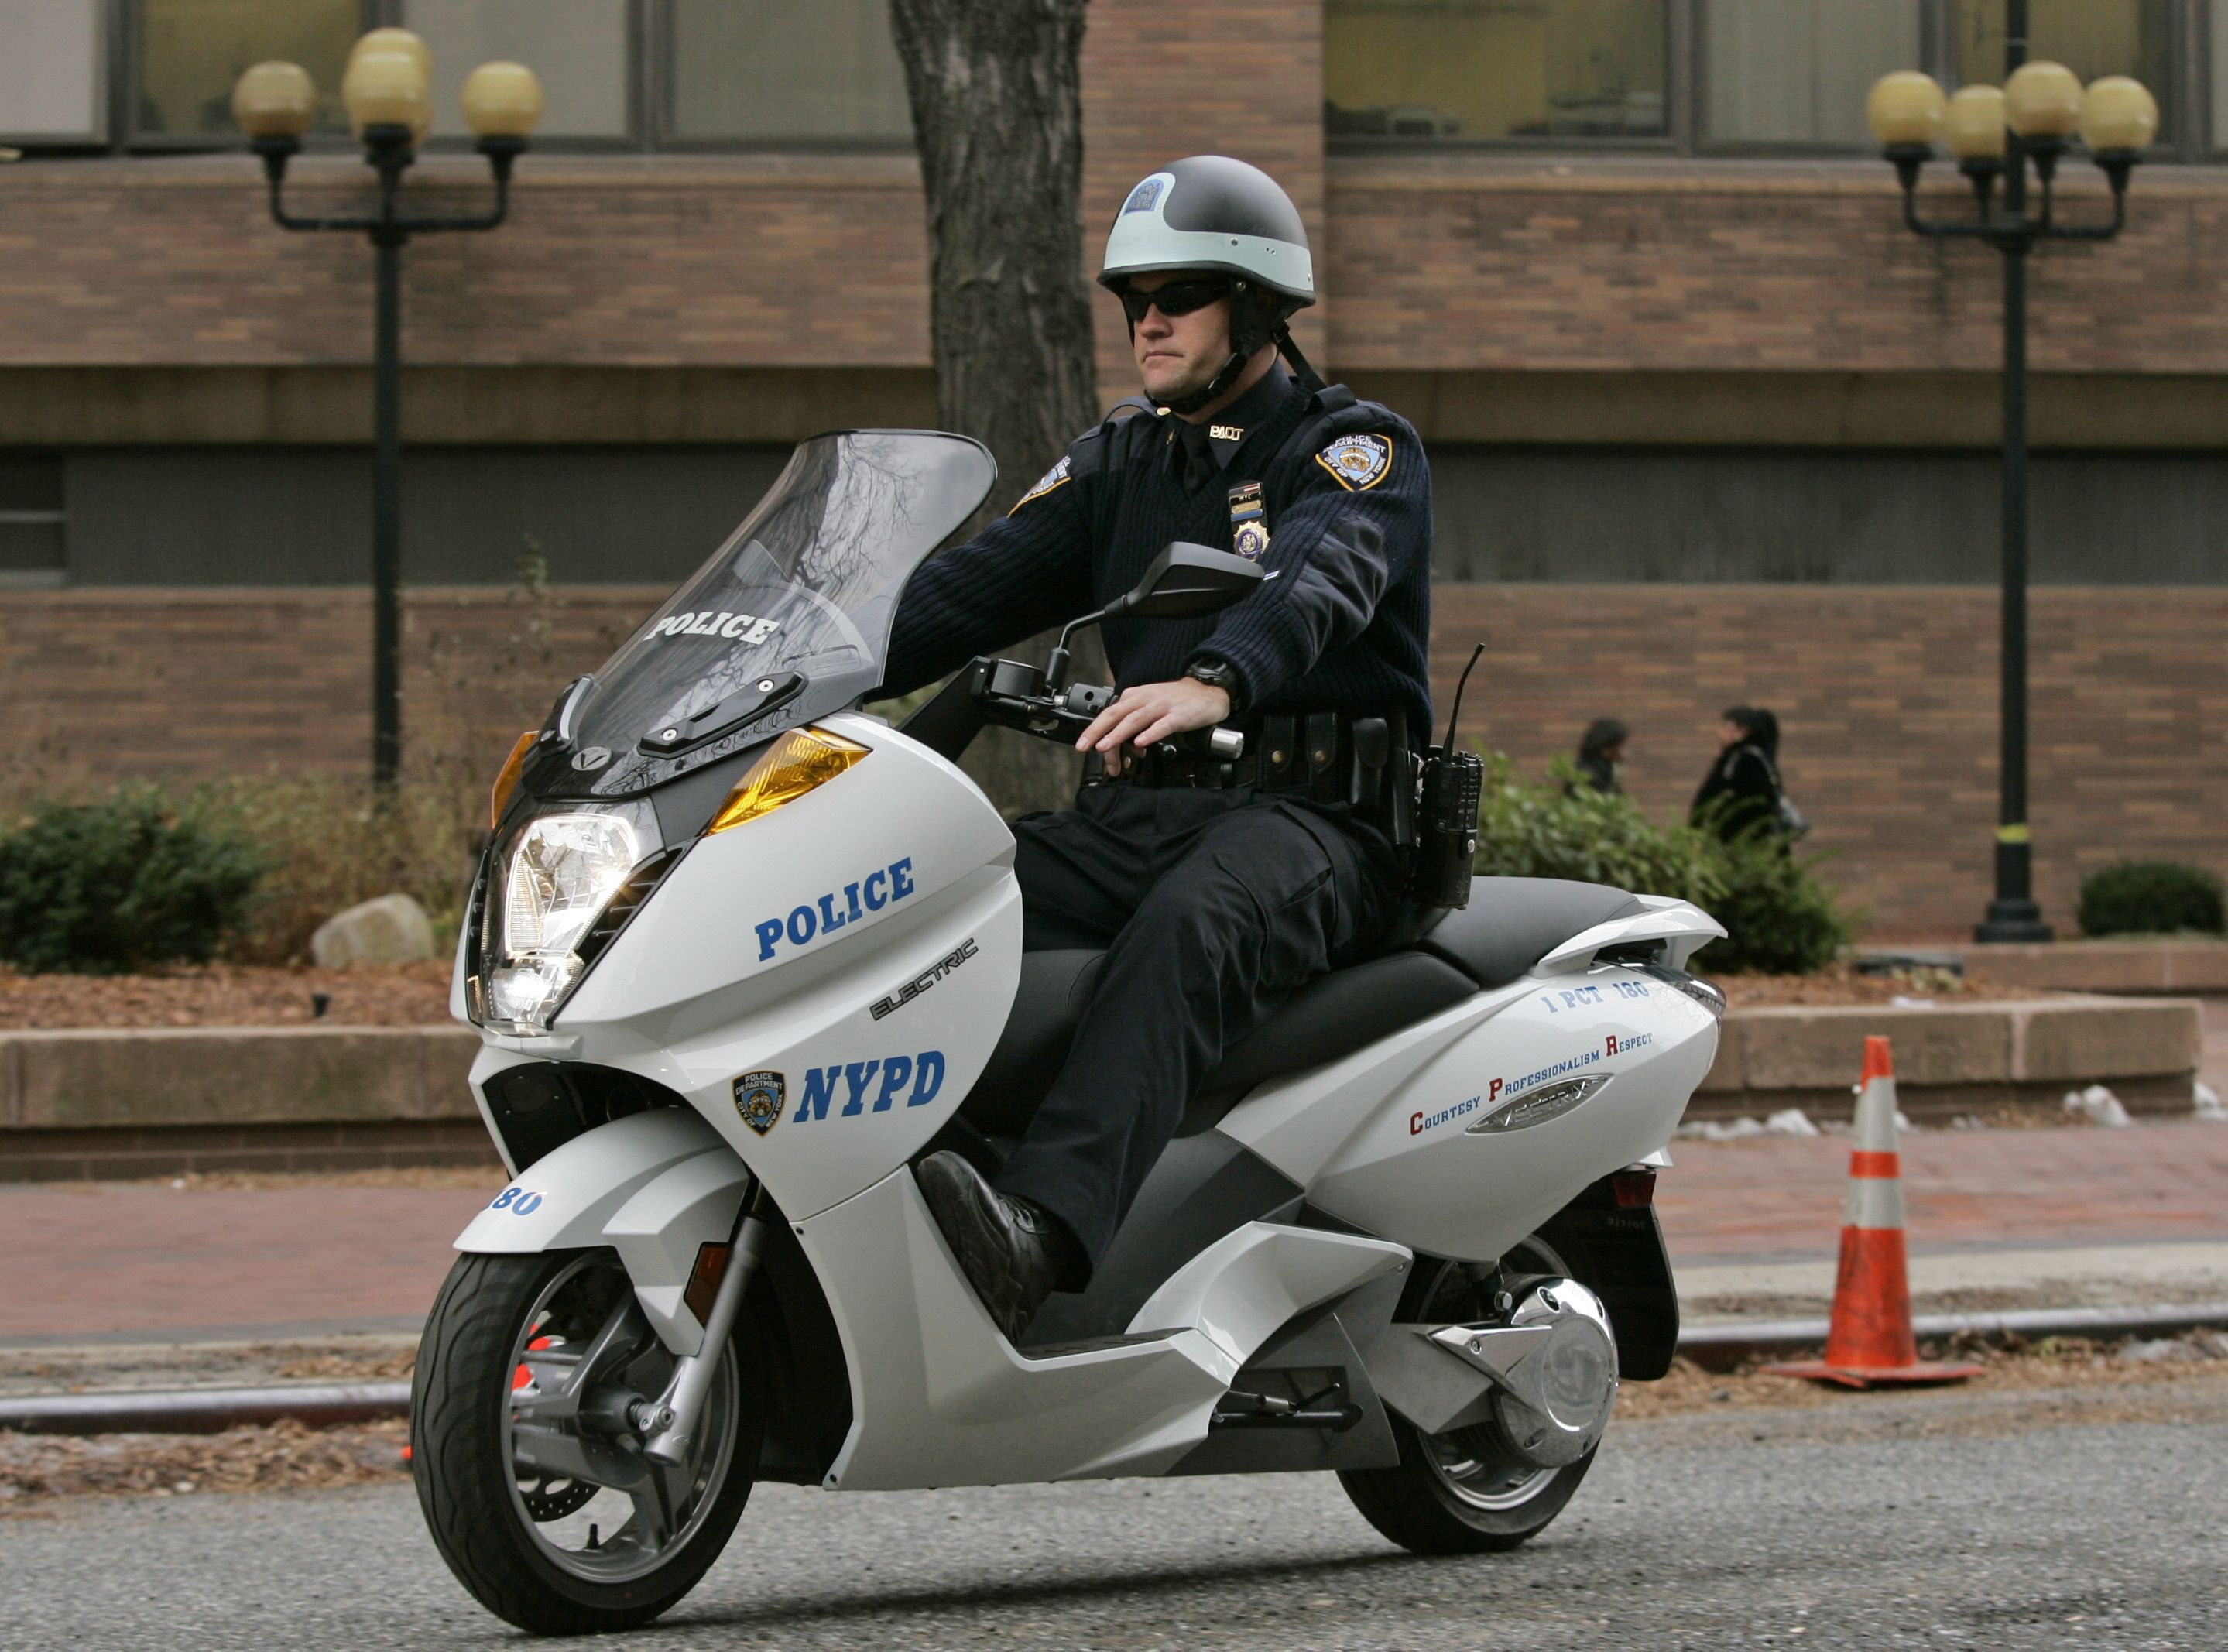 NYPD Using Electric Police Bikes for Patrol at 9/11 Memorial in NYC